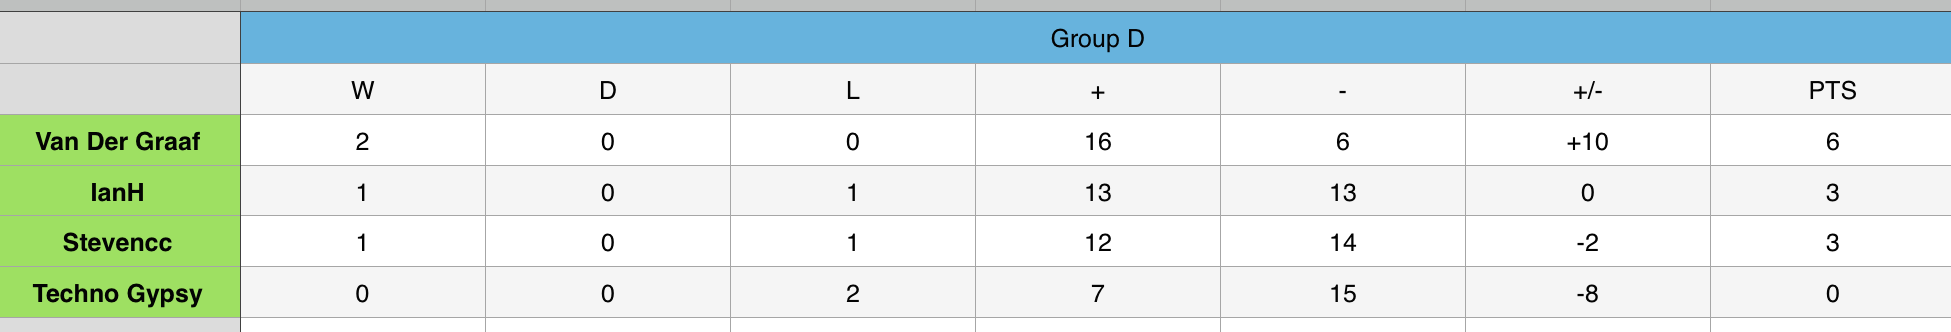 Group D 2.png